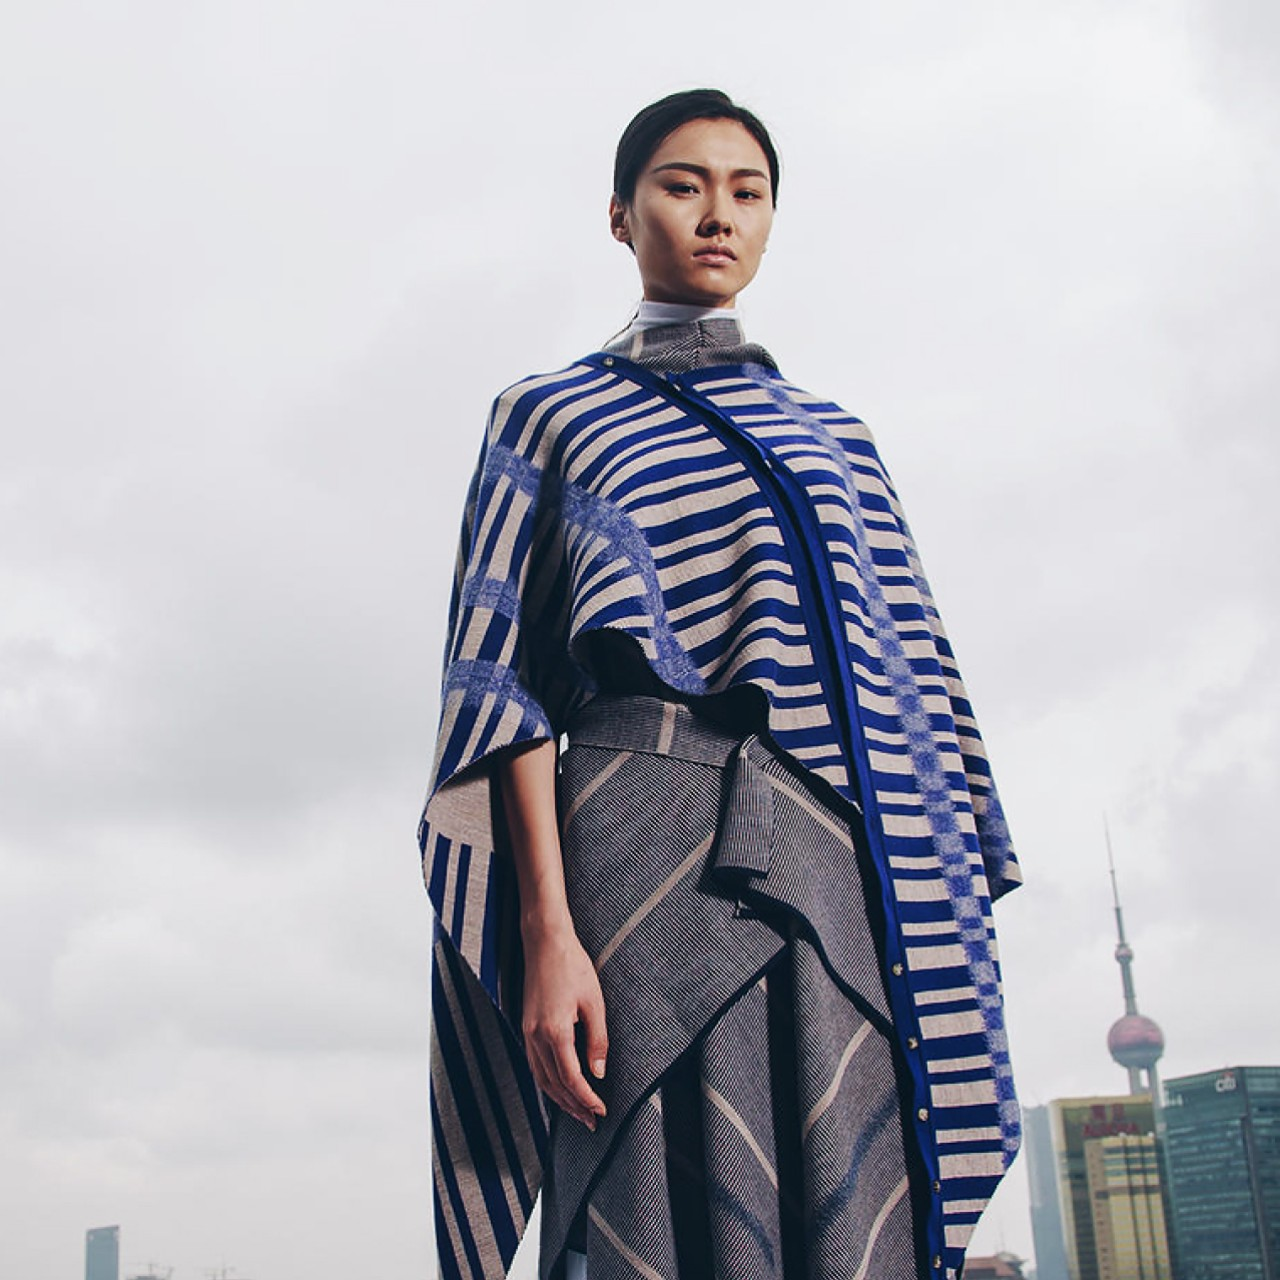 Meet four of Hong Kong's hottest young fashion designers | South